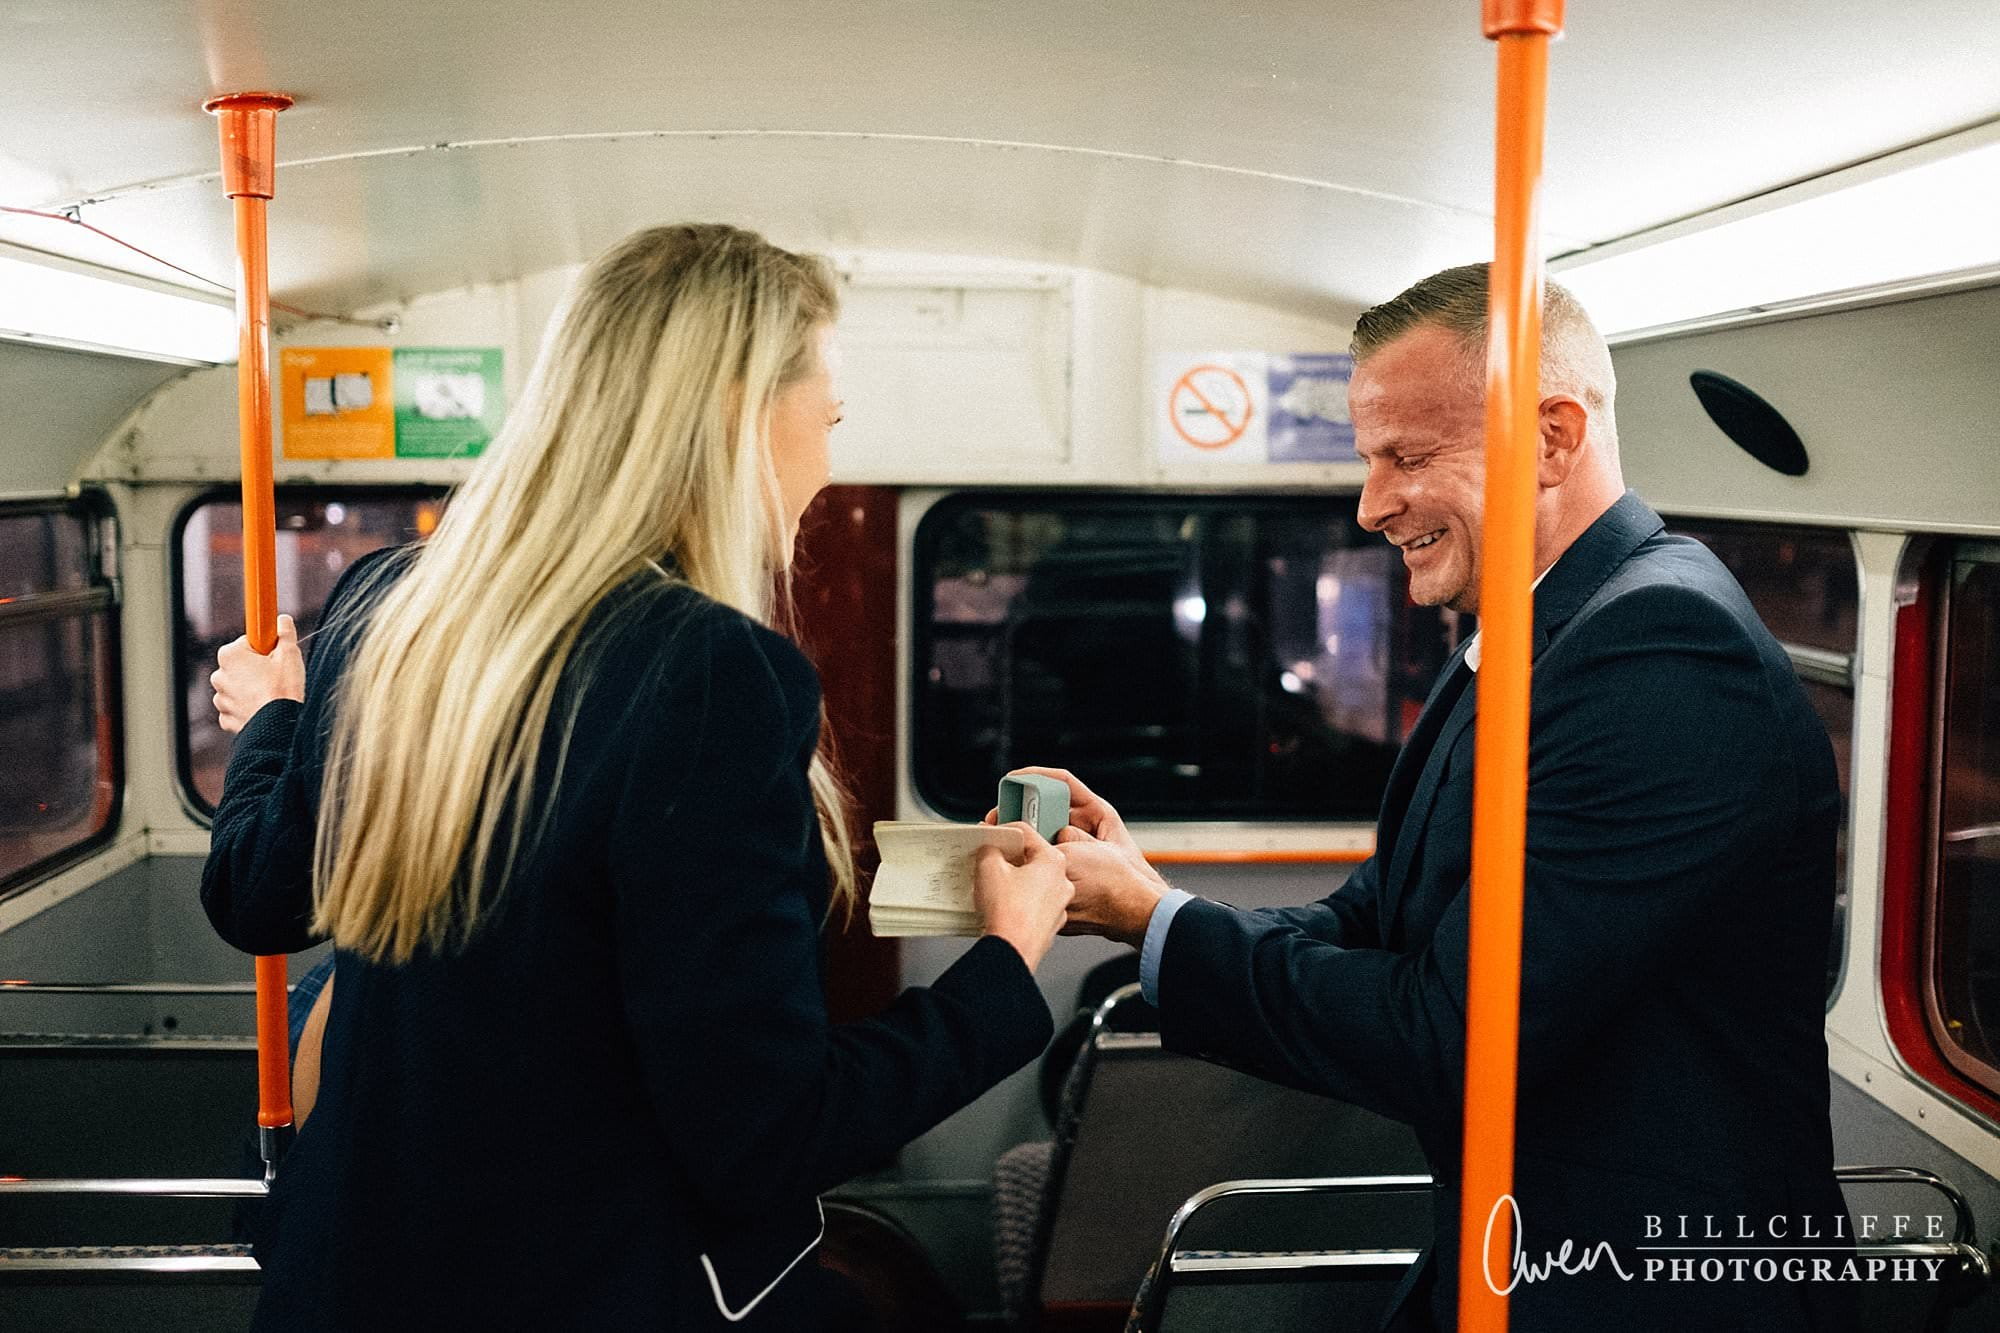 london engagement proposal photographer routemaster RE 009 - When Richard Proposed To Emma on a London Routemaster Bus